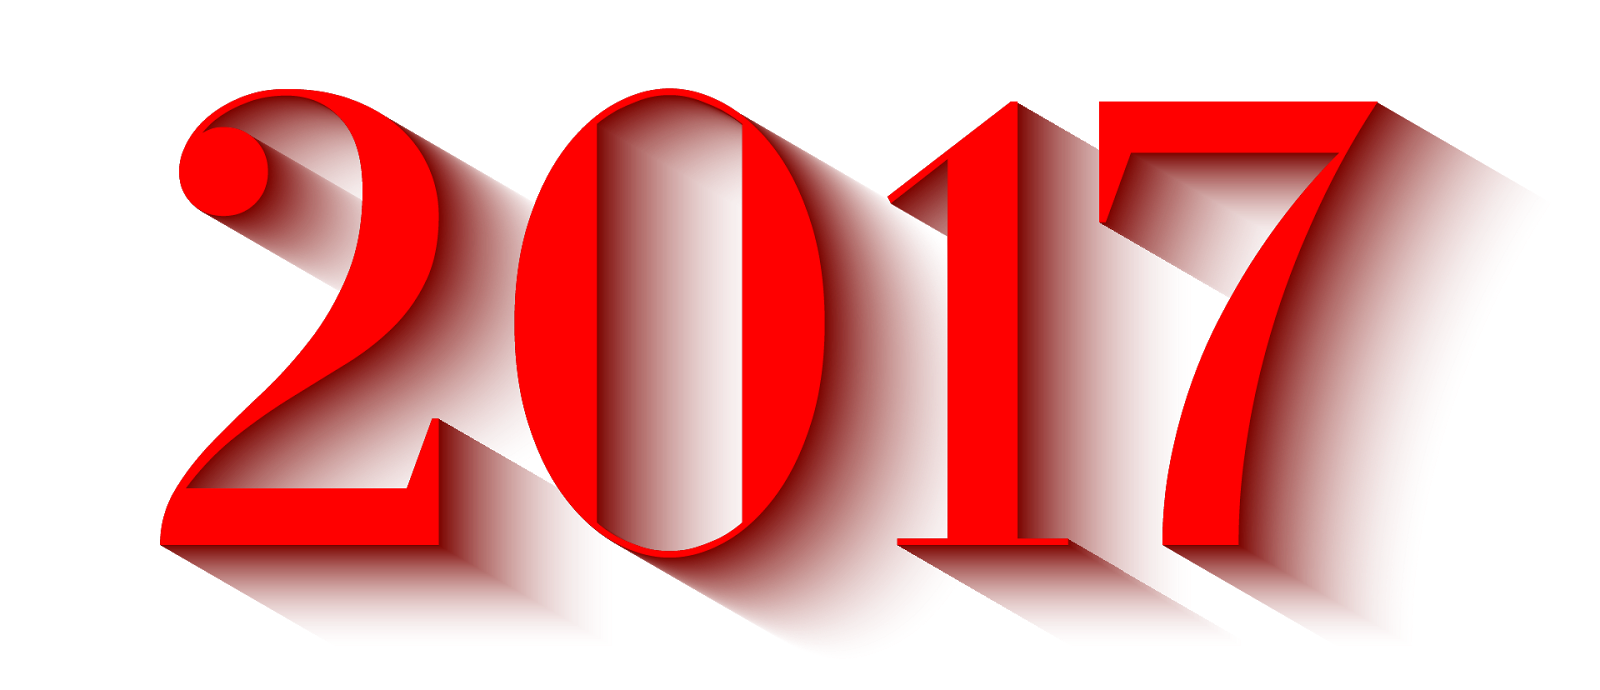 Happy new year top. Red spotlights png png transparent download